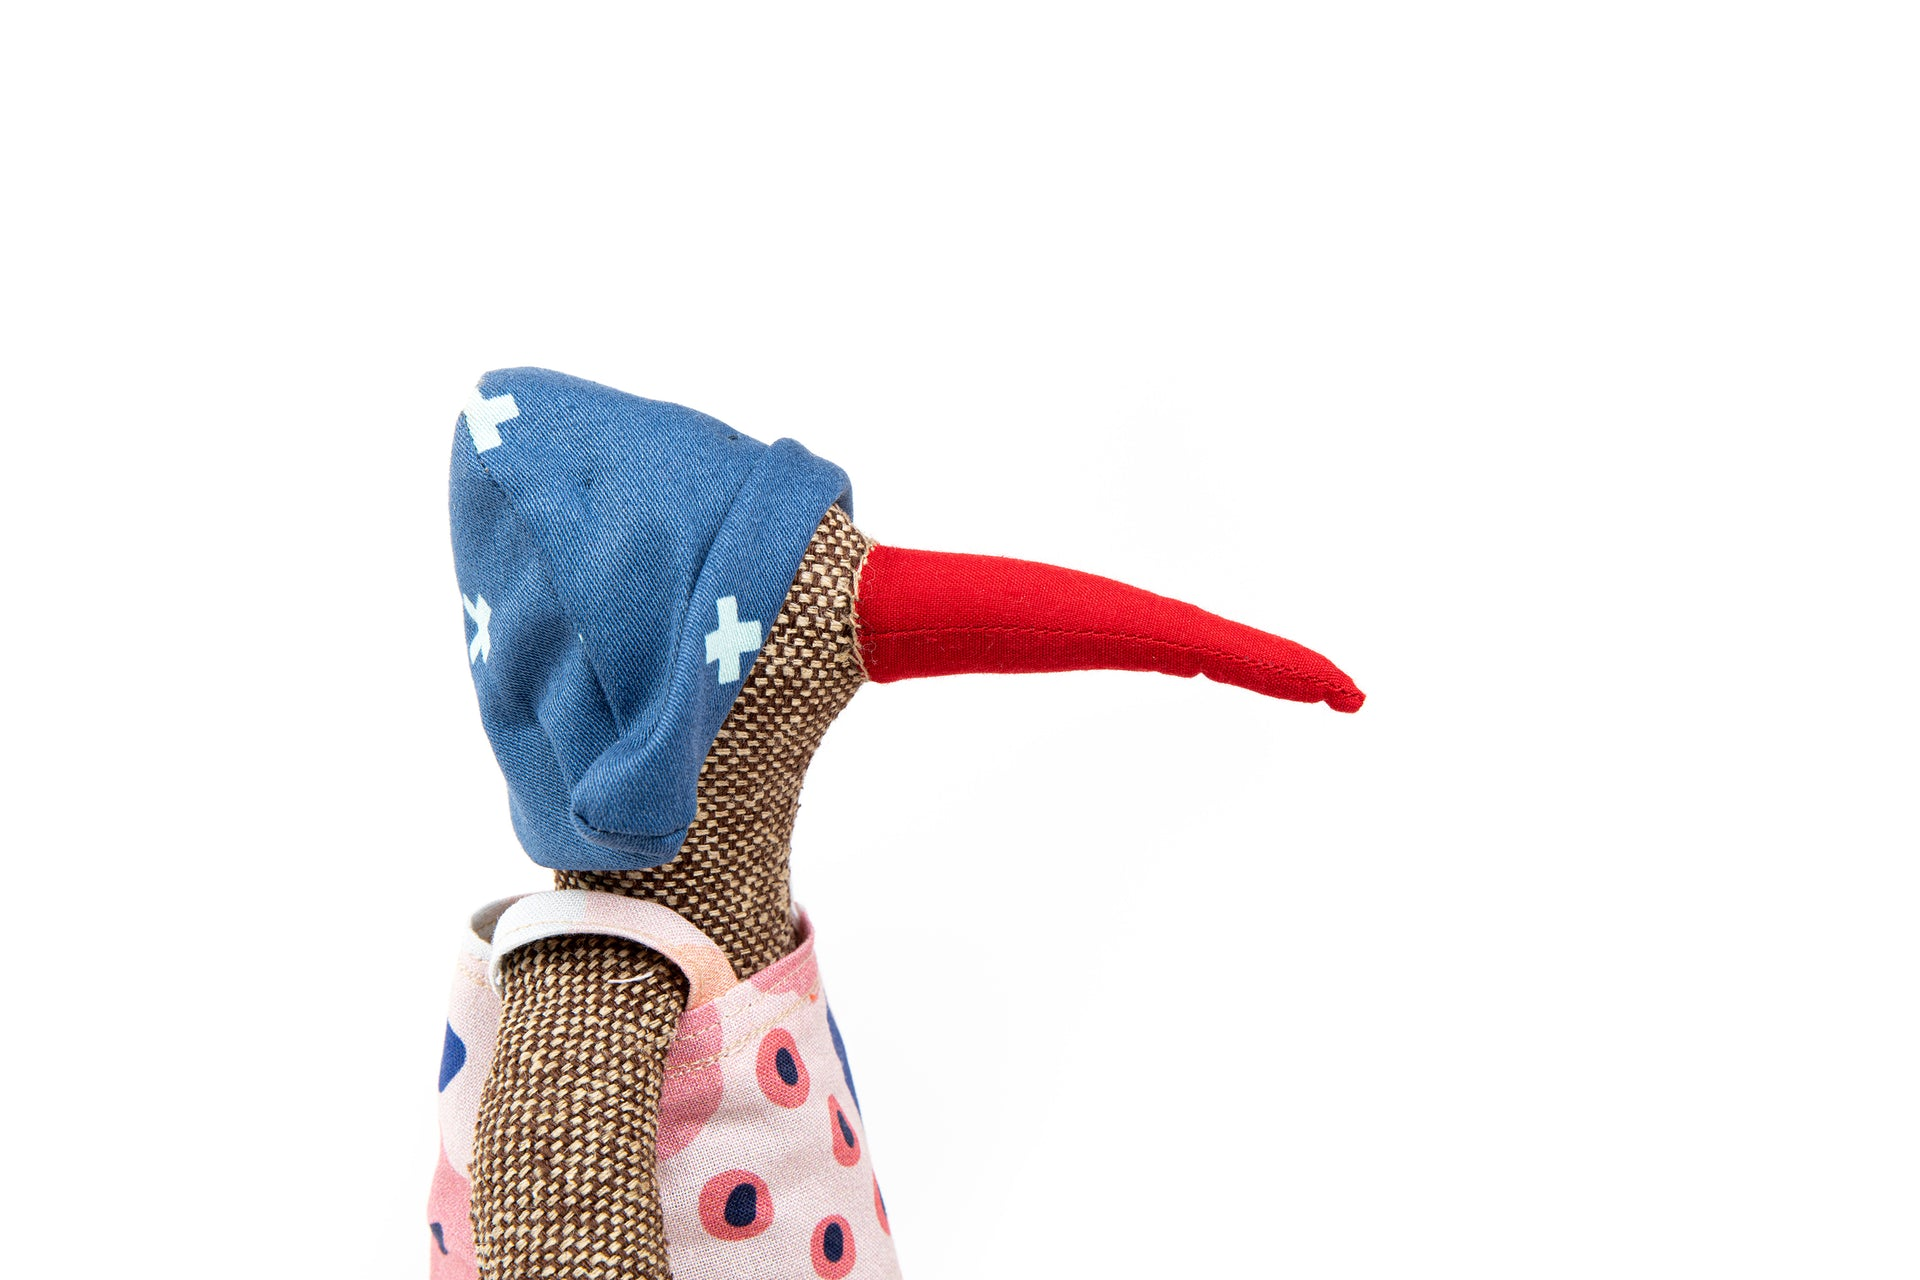 Plush duck doll Cloth bird Handmade doll Fabric doll bird First doll Stuffed Animal Goose doll One of a kind Decorative toy Eco Gift ideas